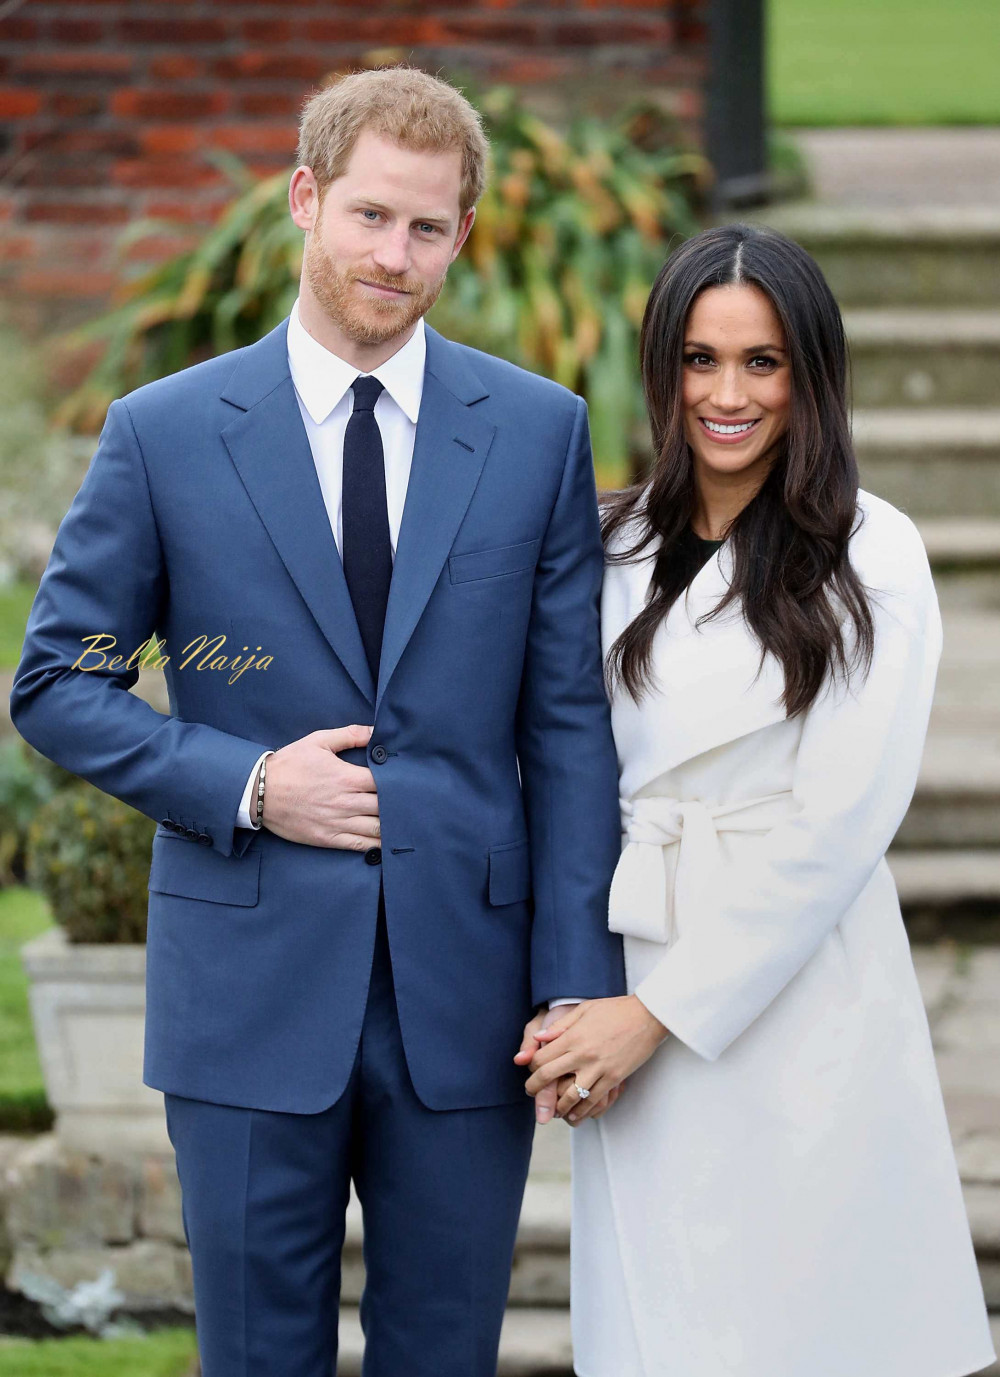 meghan markle prince harry 39 s first official appearance as engaged couple bellanaija. Black Bedroom Furniture Sets. Home Design Ideas